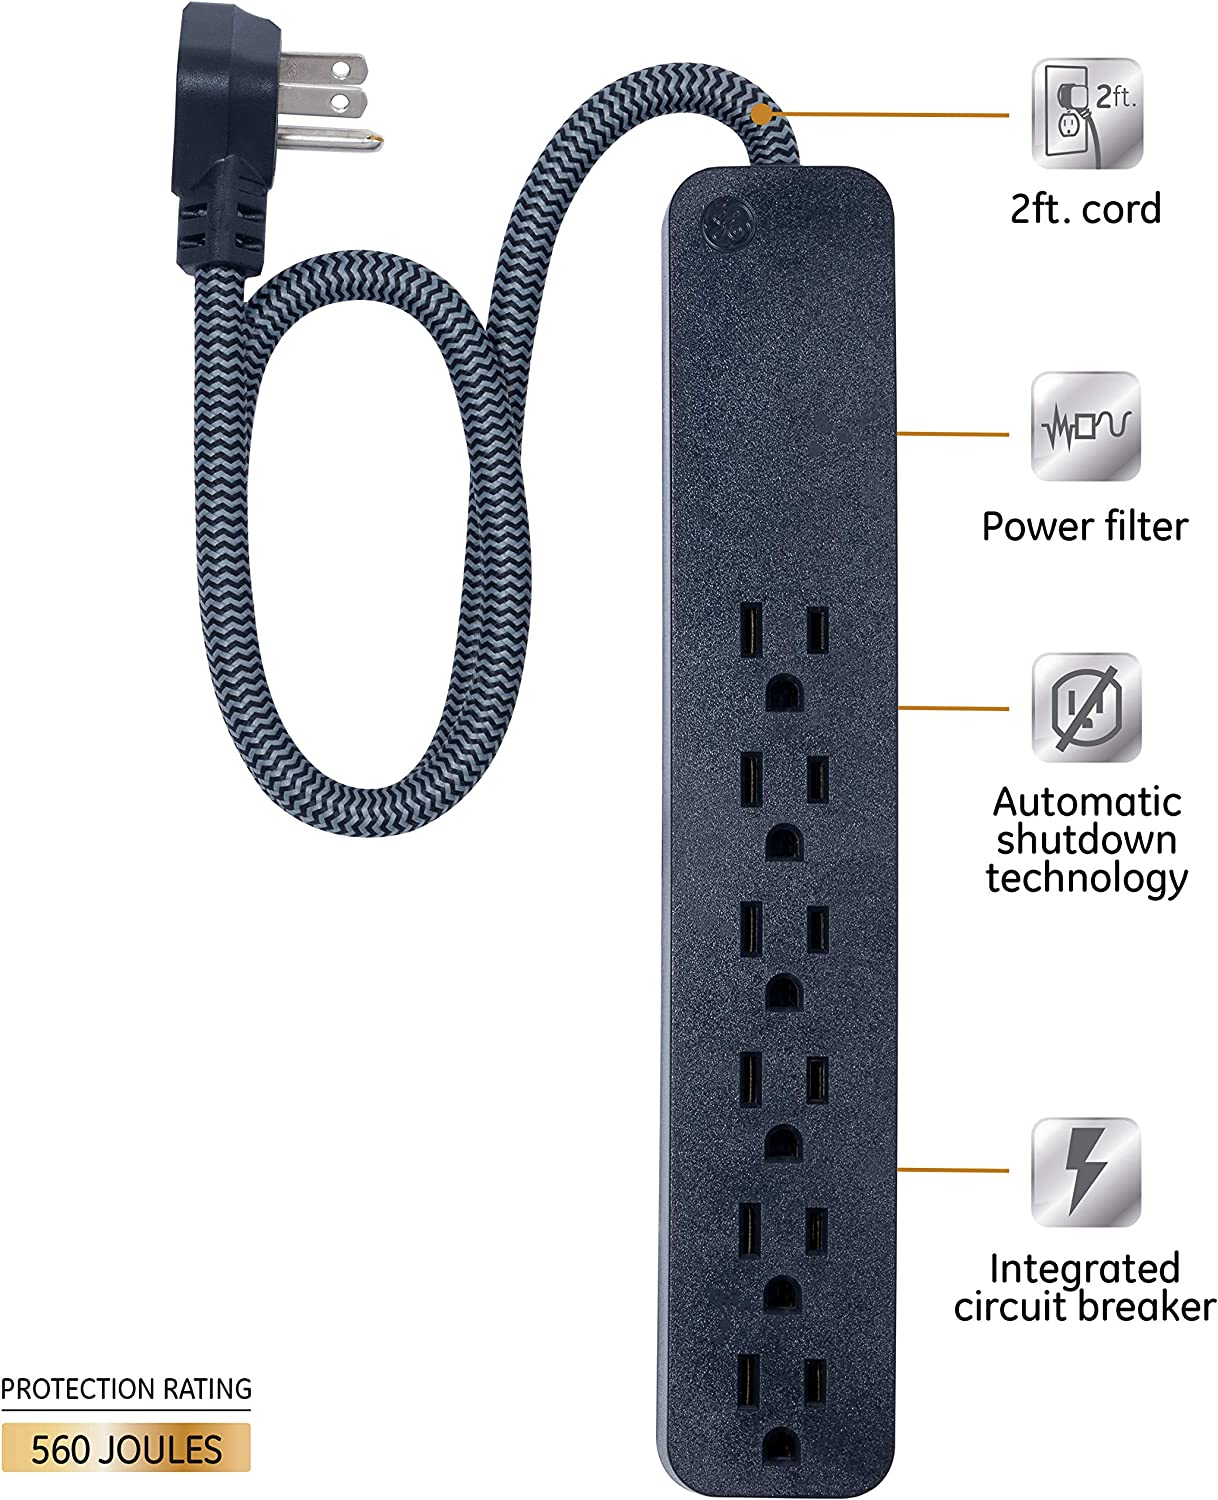 GE Pro 6 Outlet Surge Protector, 2 ft Extension Cord, Power Strip, Flat Plug, Wall Mount, Black, 45170: Electronics